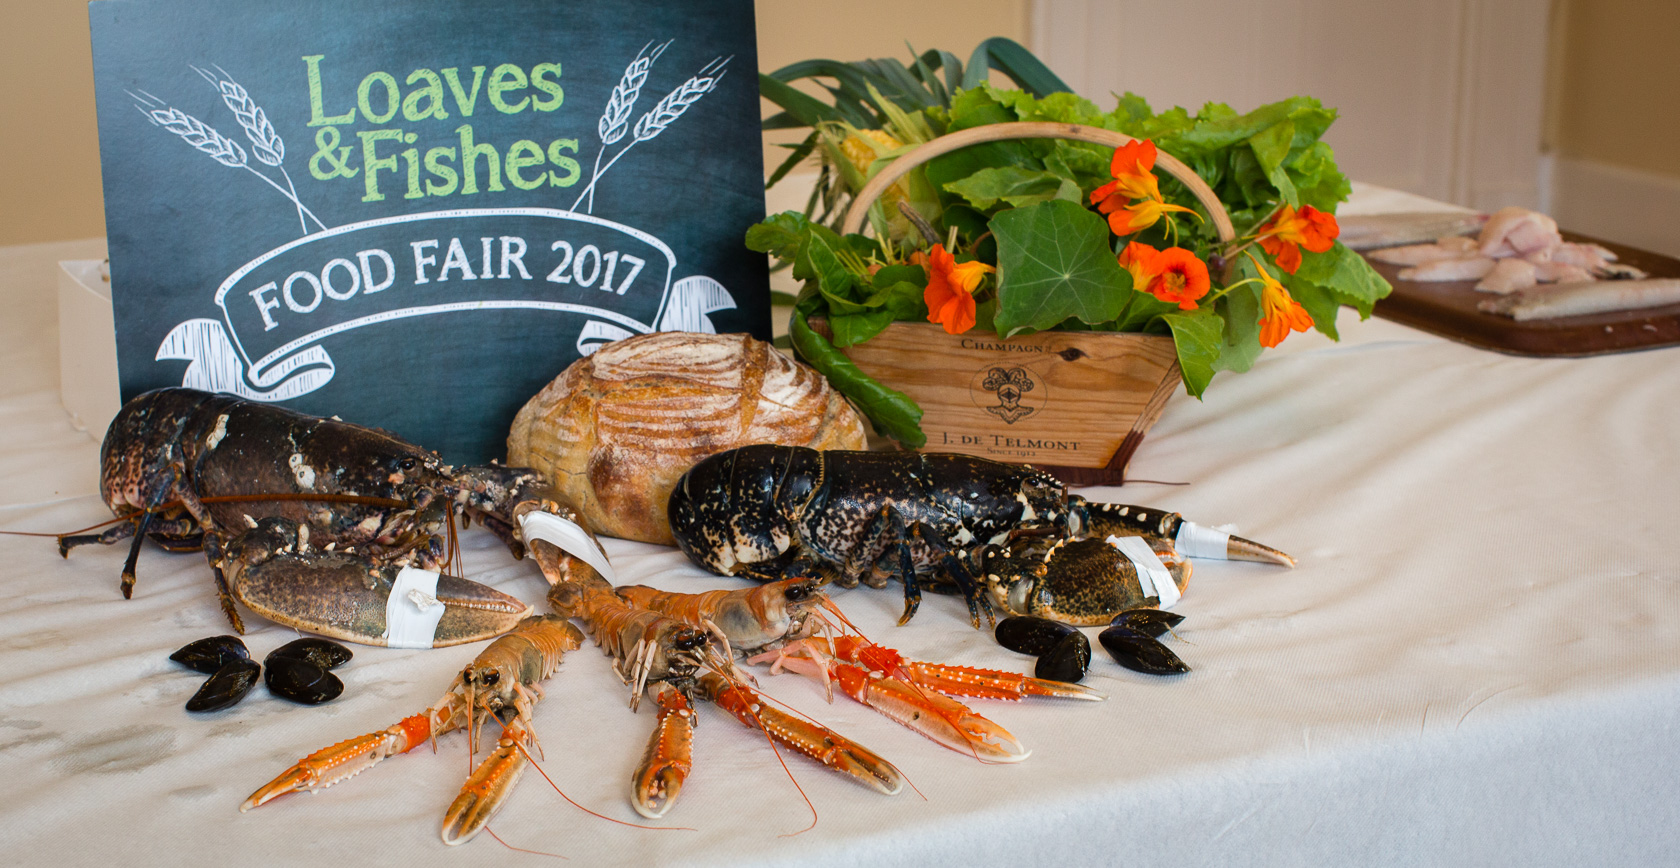 Loaves and fishes food fair 2017 food ni our food so good for Loaves and fish